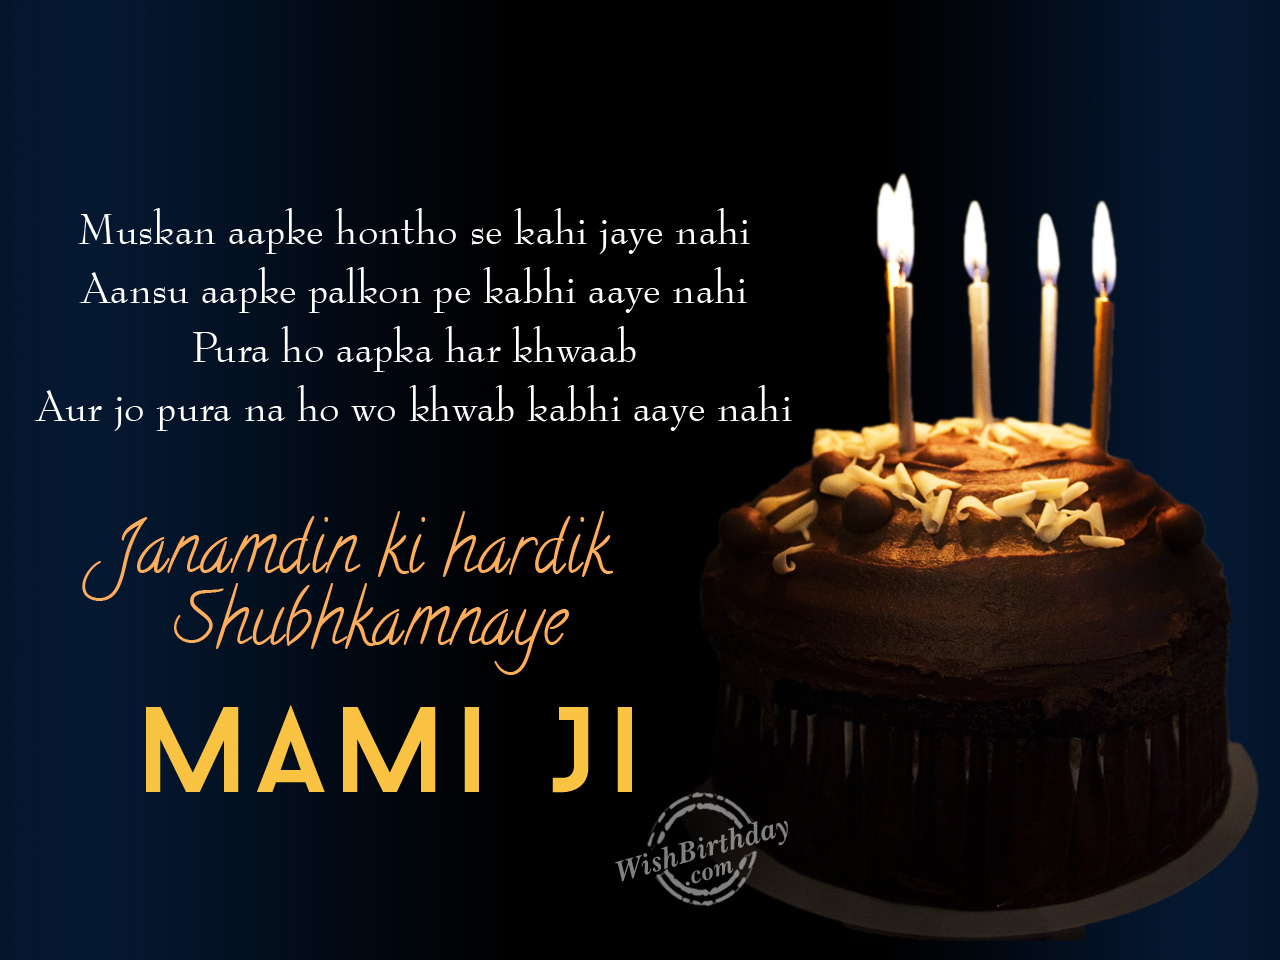 Birthday Wishes For Mami Ji - Birthday Images, Pictures